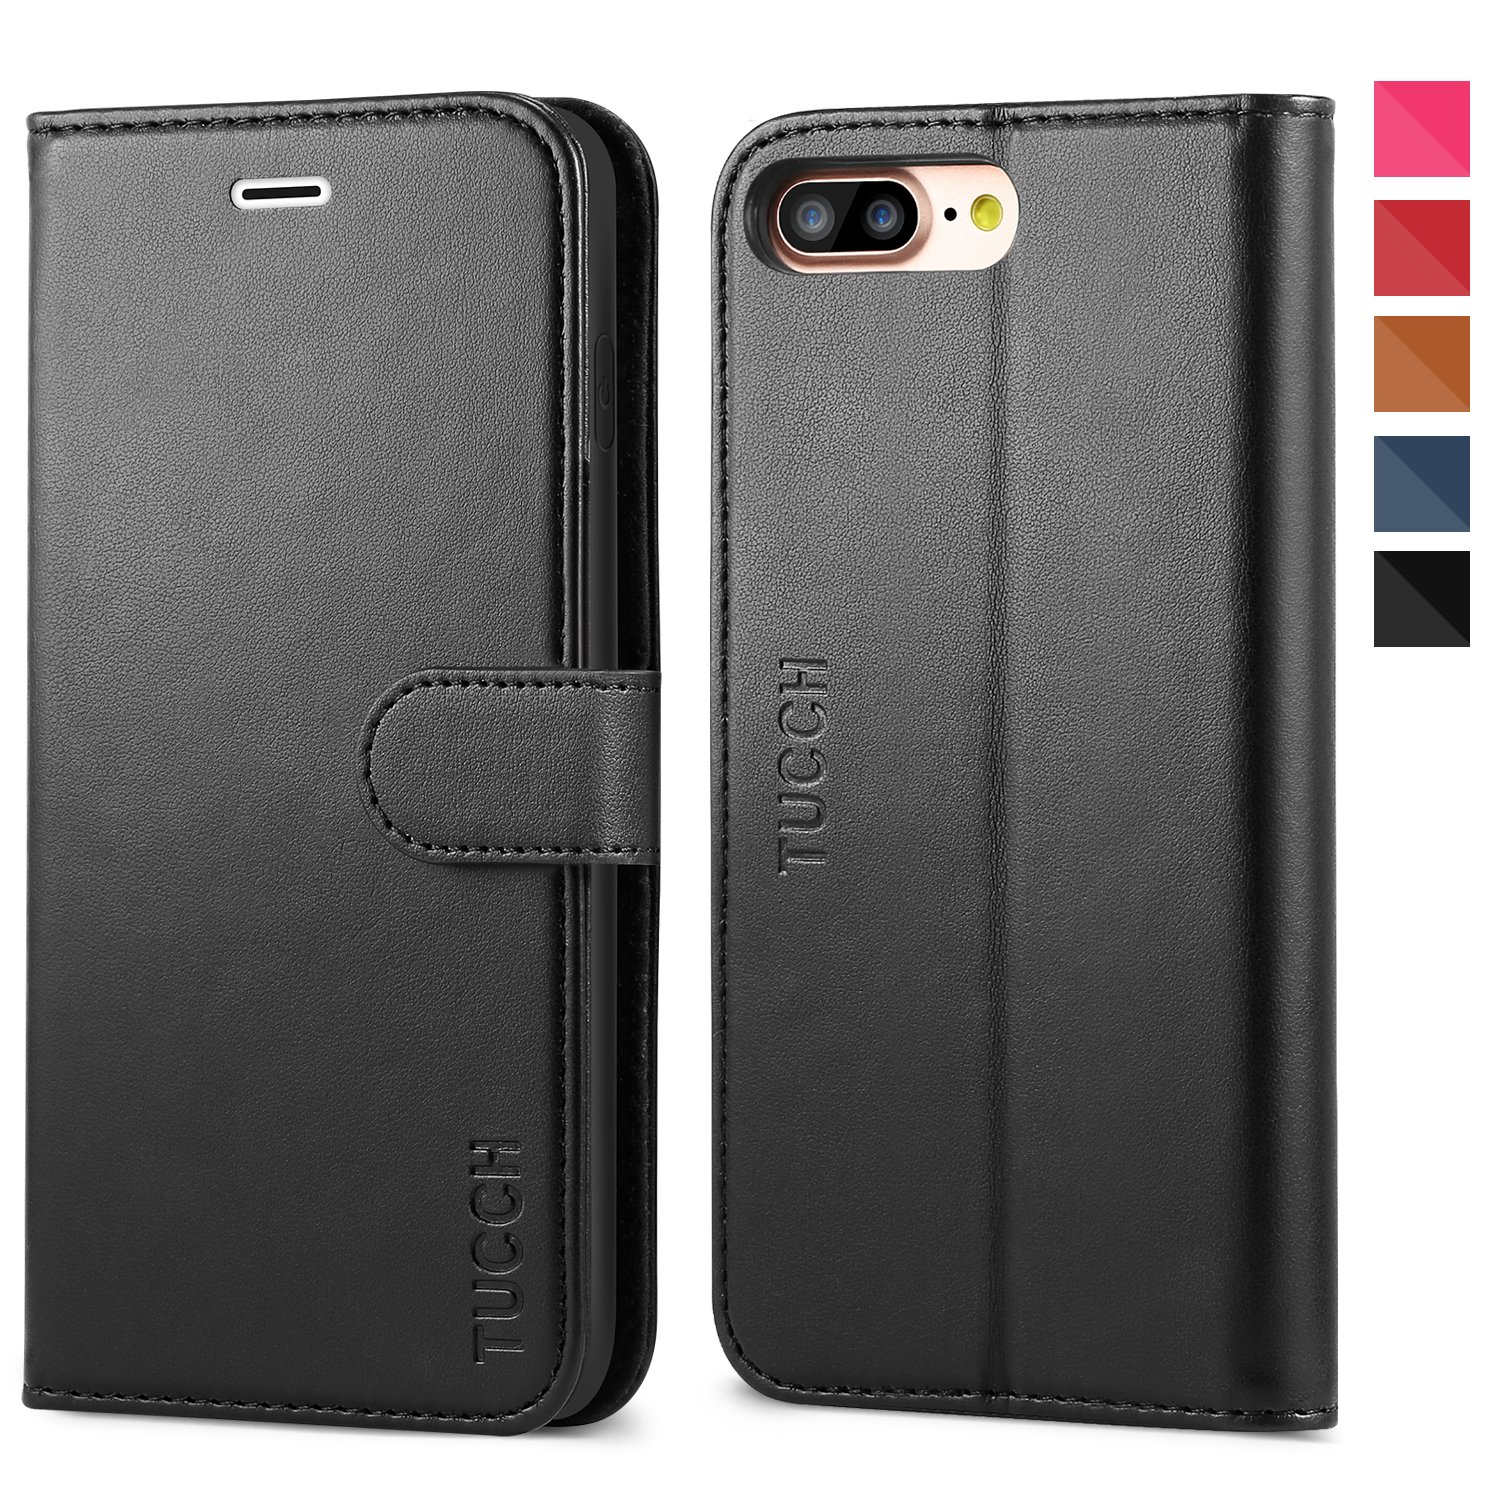 TUCCH iPhone 7 Plus Wallet Case, iPhone 8 Plus Case, Premium PU Leather Case with Card Slot, Stand Holder and Magnetic Closure [TPU Shockproof Interior Protective Case] for iPhone 7/8 Plus, Black